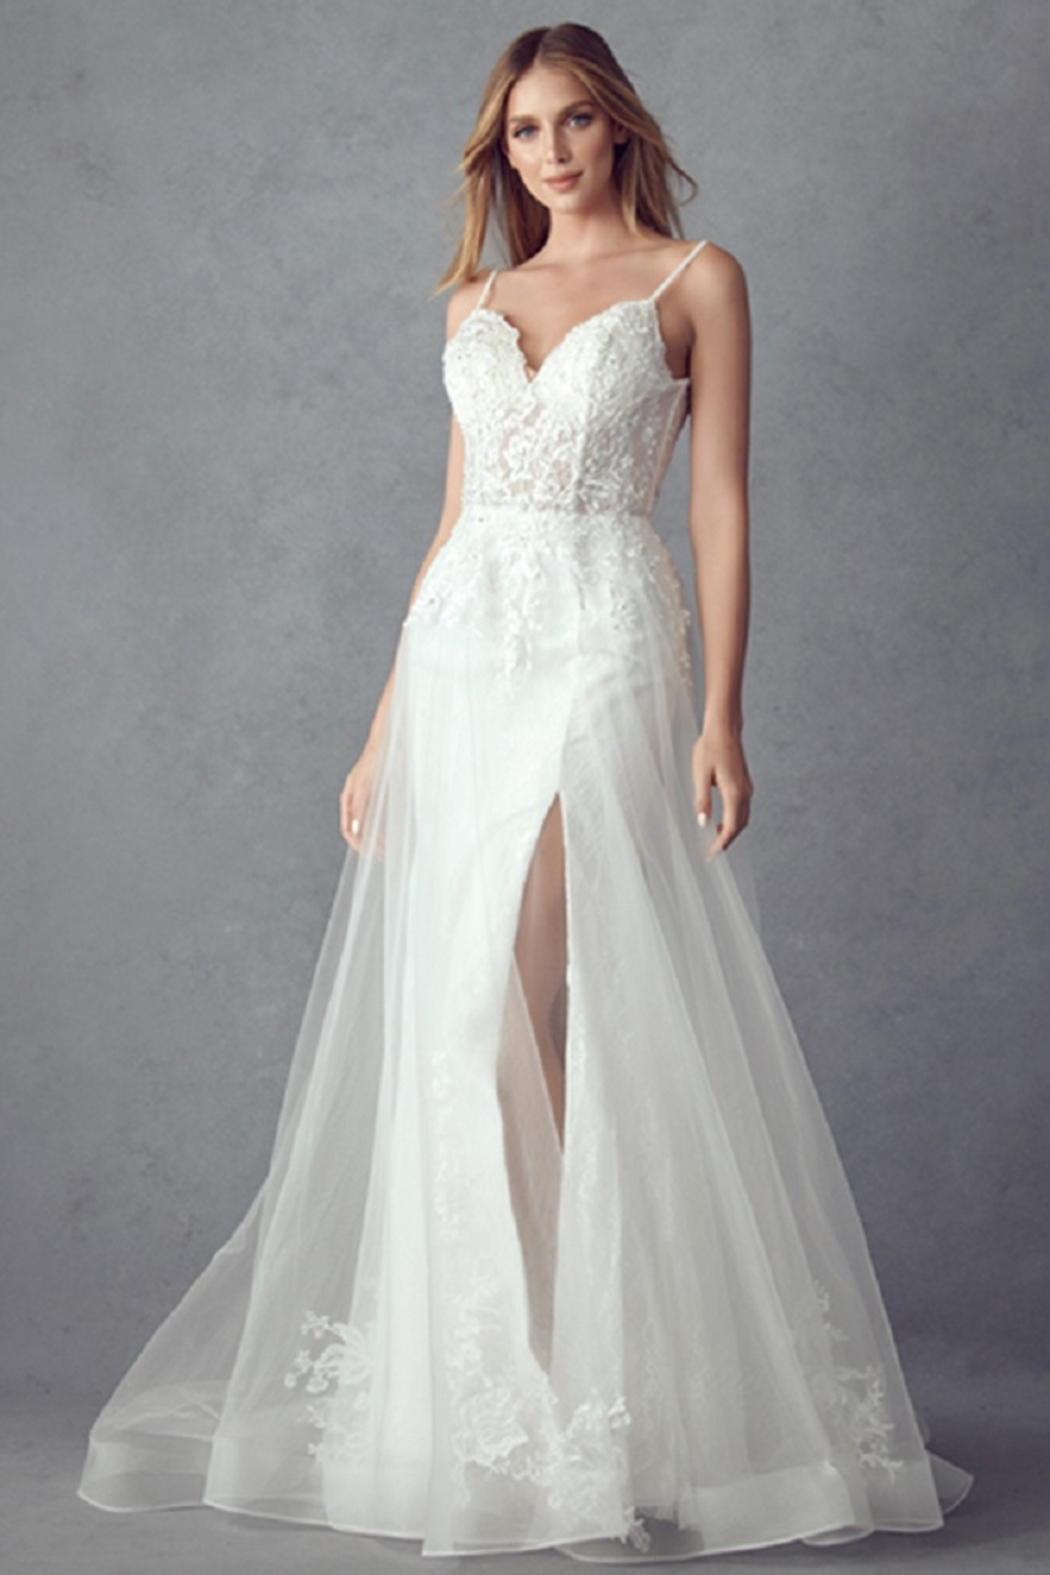 Juliet Off White Lace Bridal Gown - Main Image